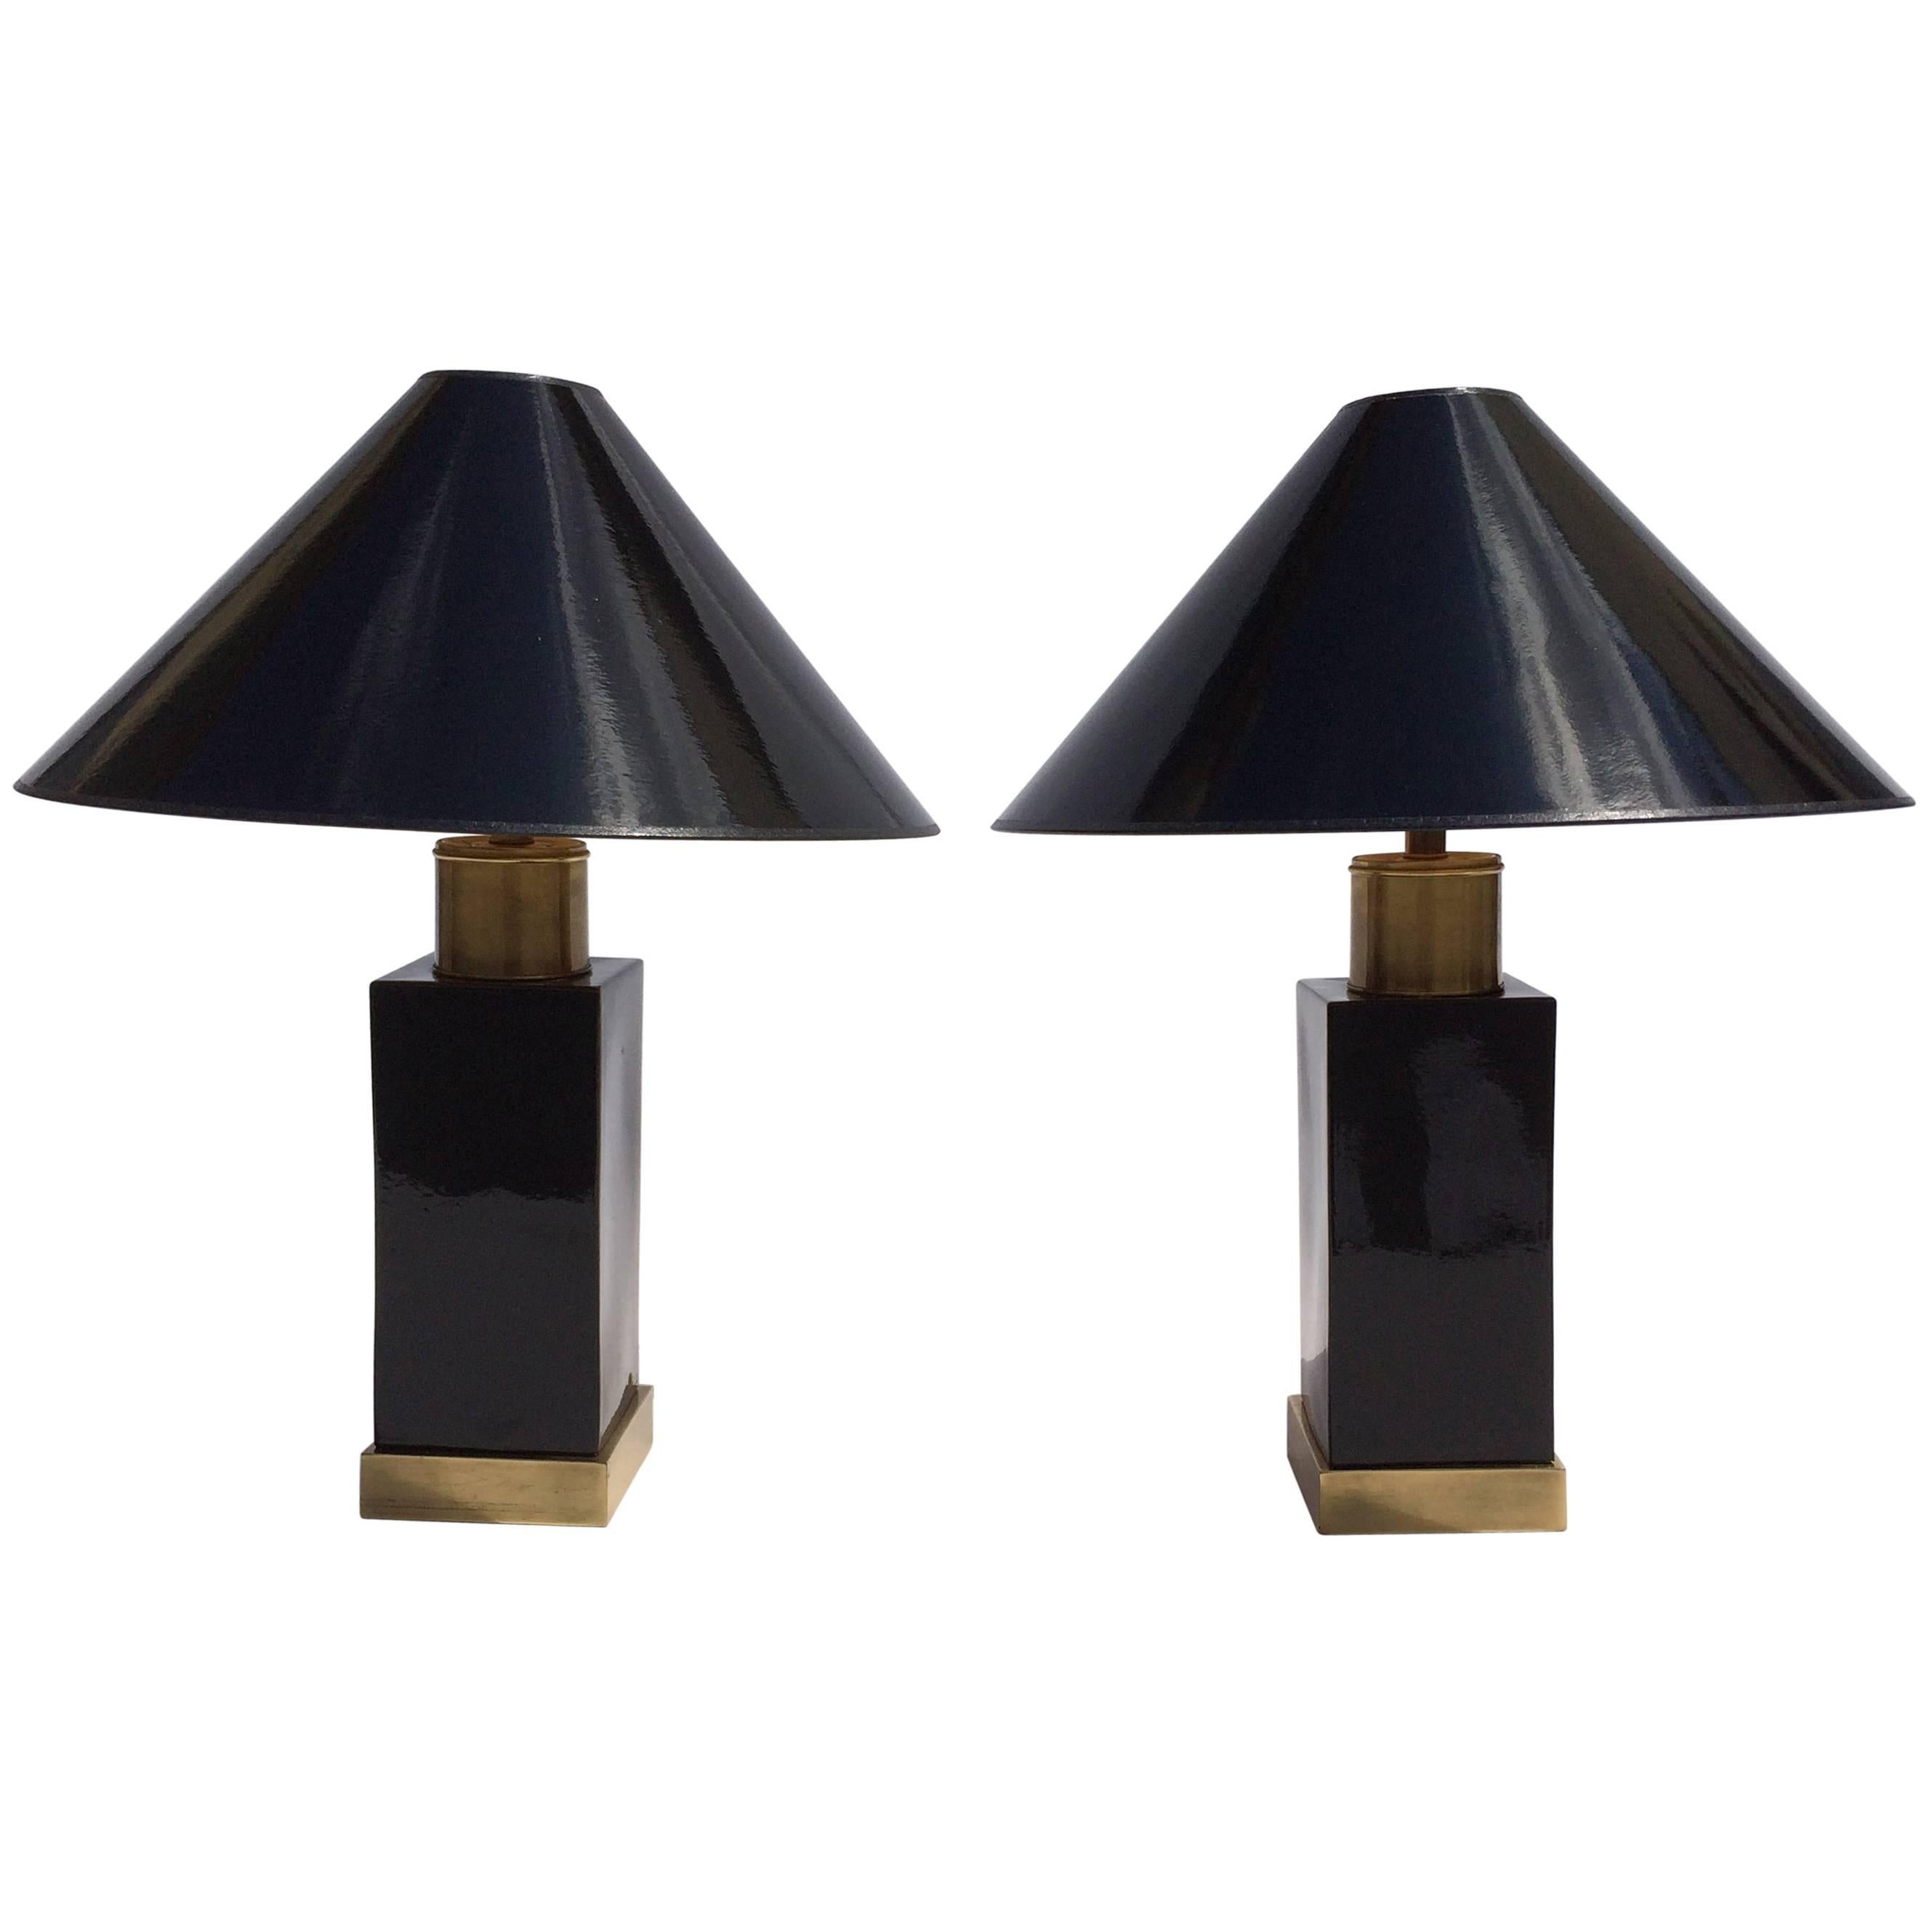 Brass and Black Ceramic Table Lamps